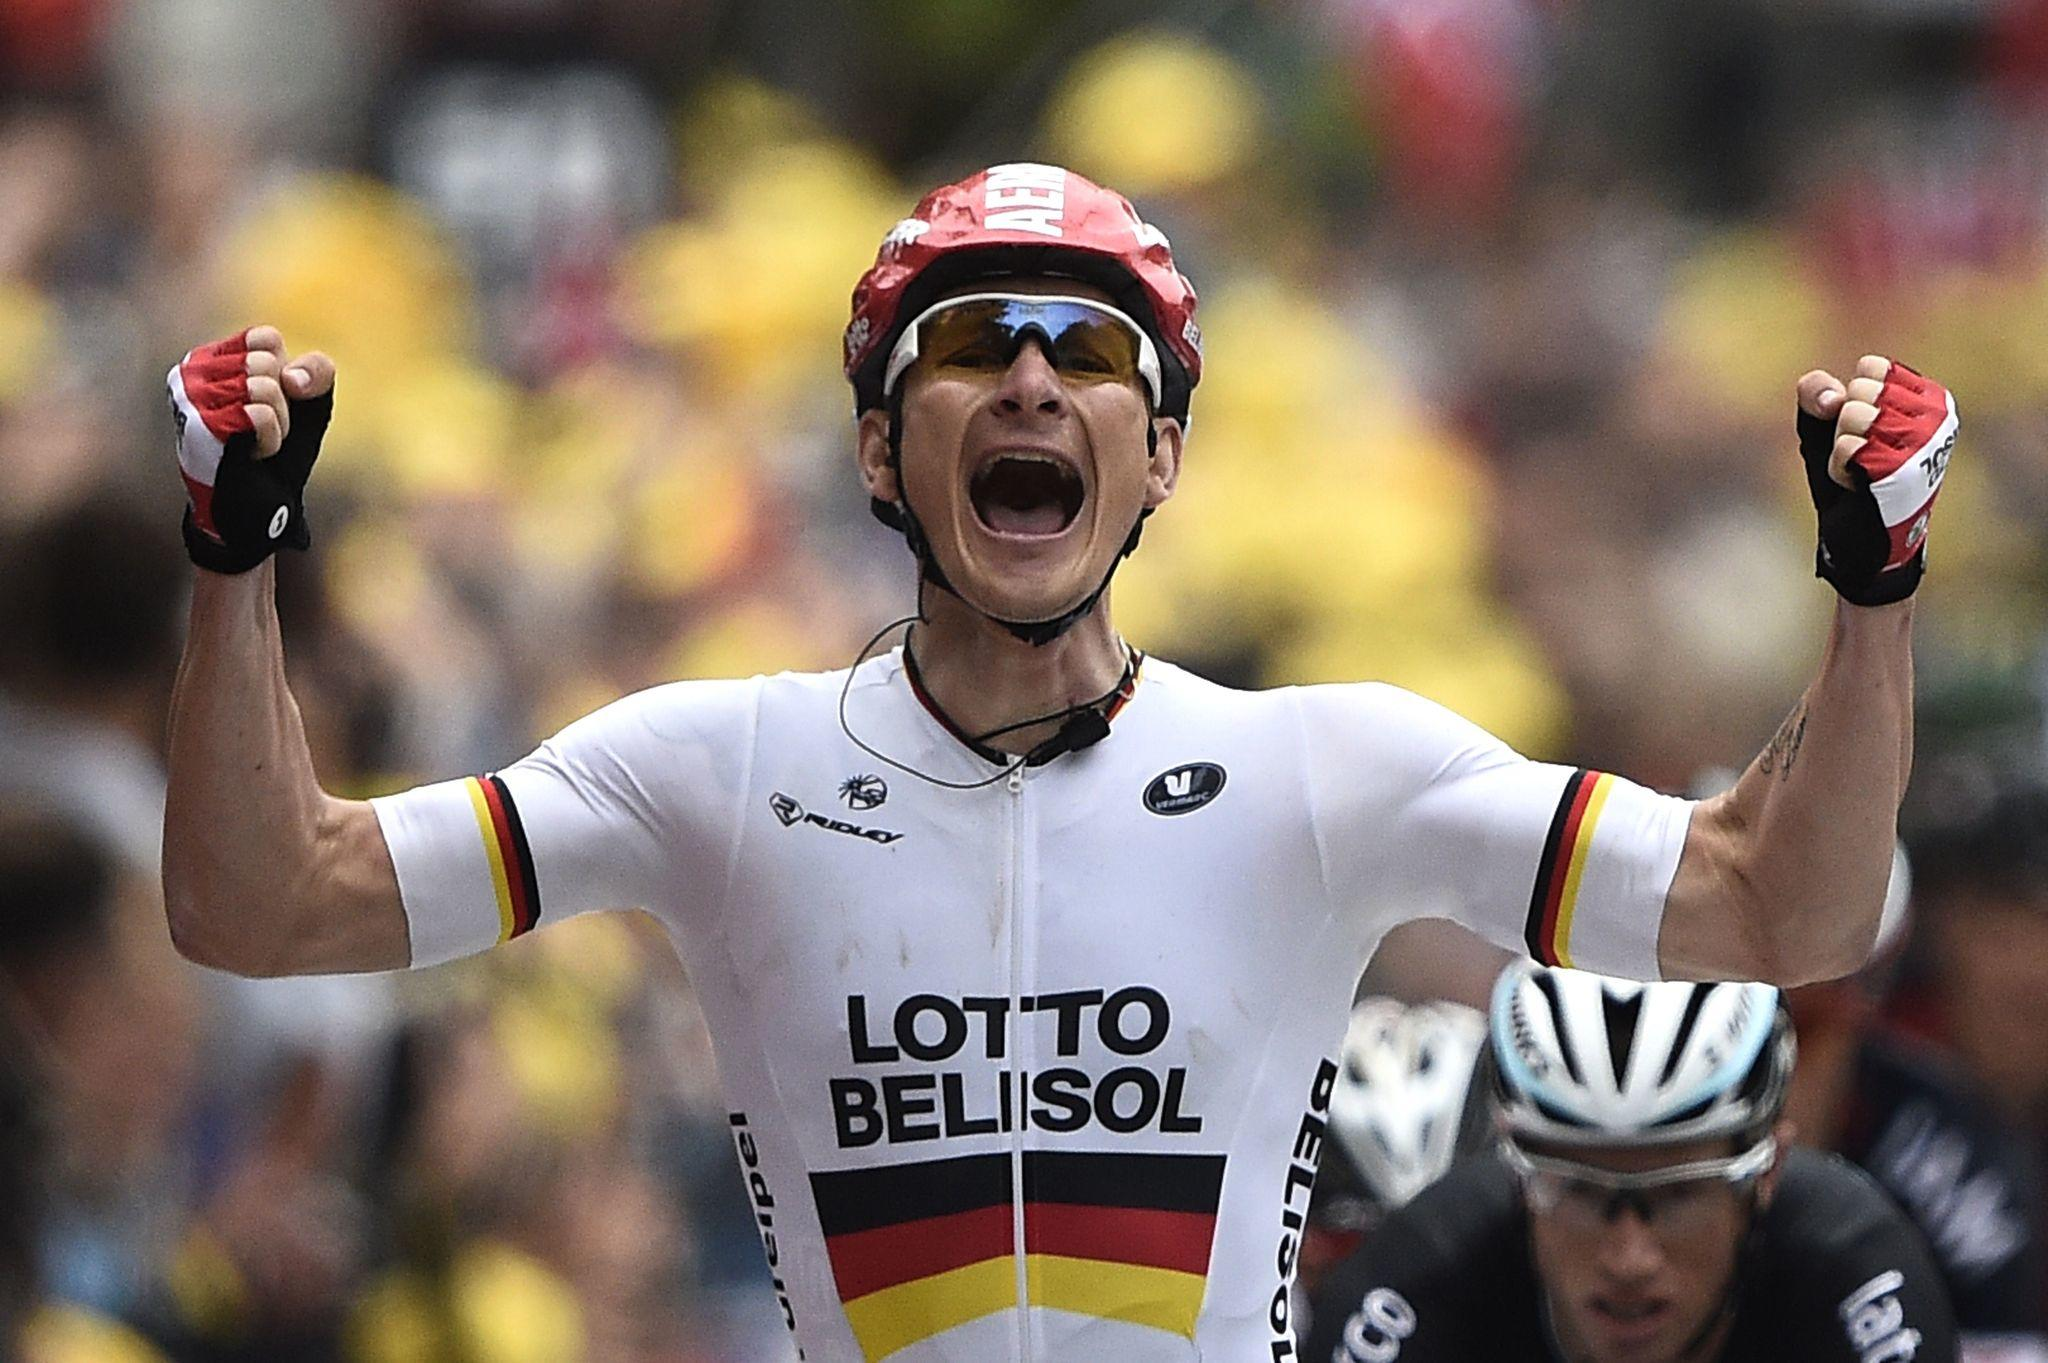 Germany's Andre Greipel celebrates as he crosses the finish line at the end of the 194 km sixth stage of the 101st edition of the Tour de France.